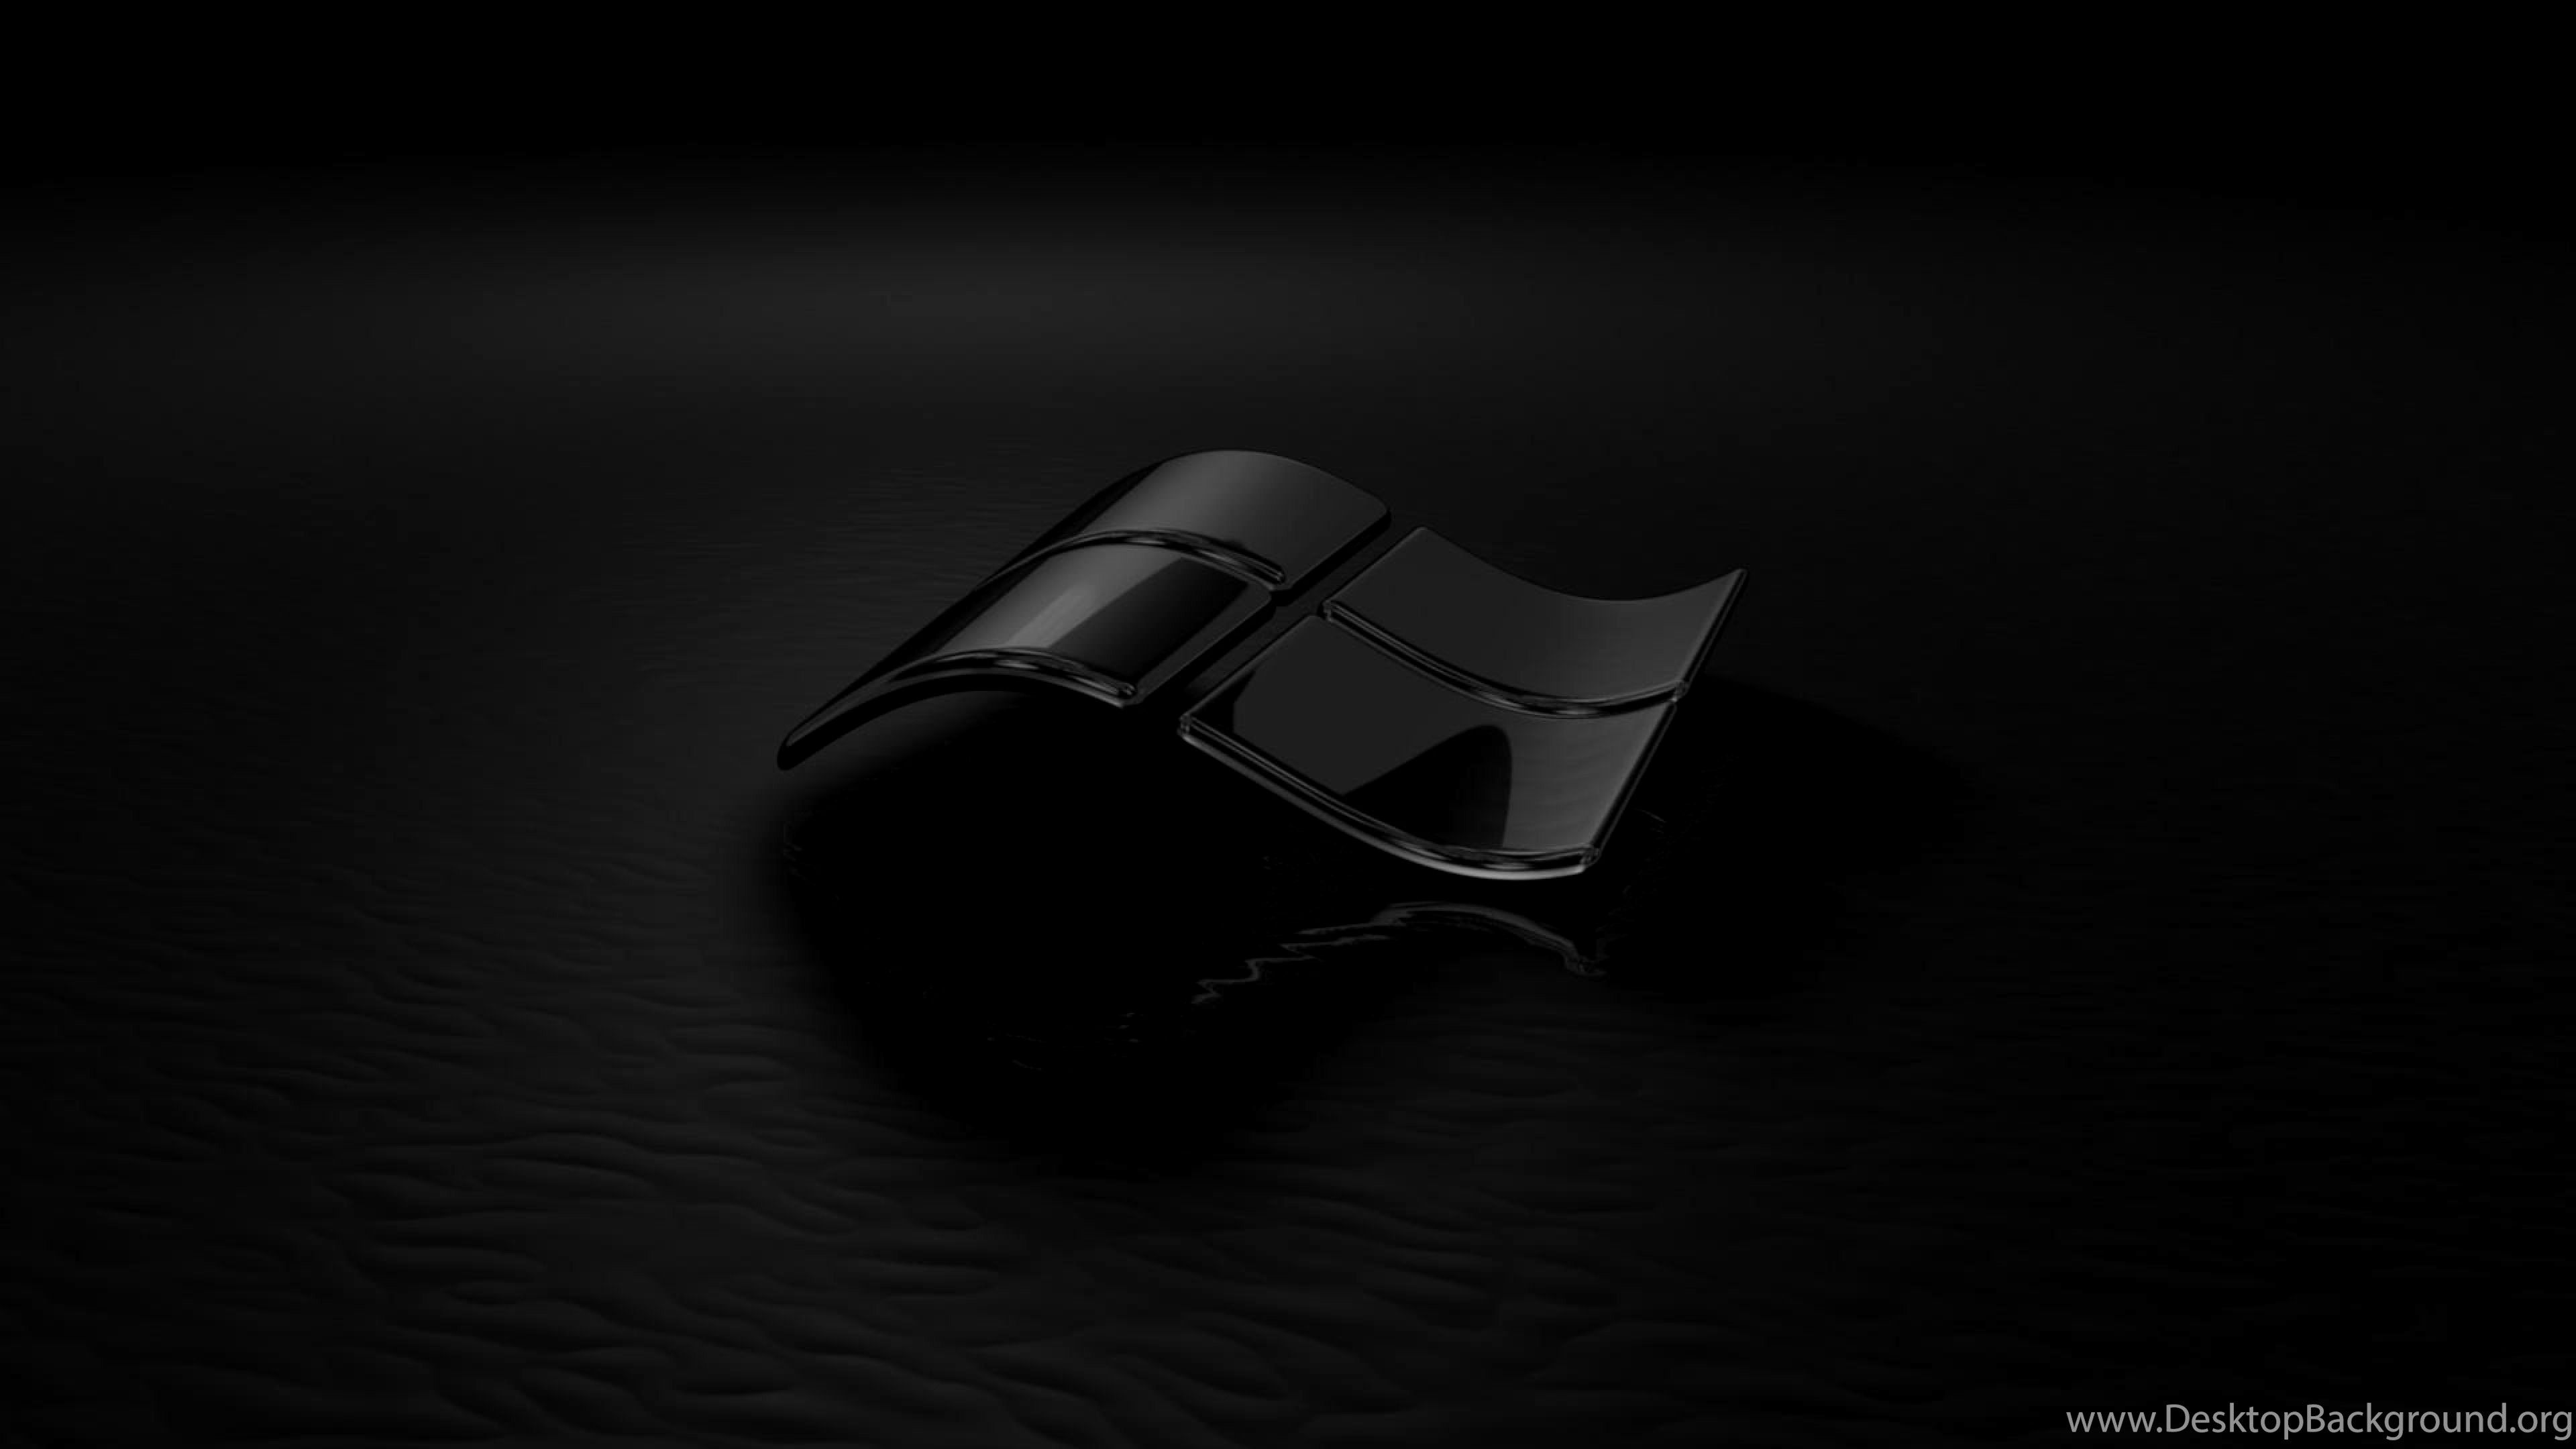 Dark Wallpaper 4k For Windows Gallery Laptop